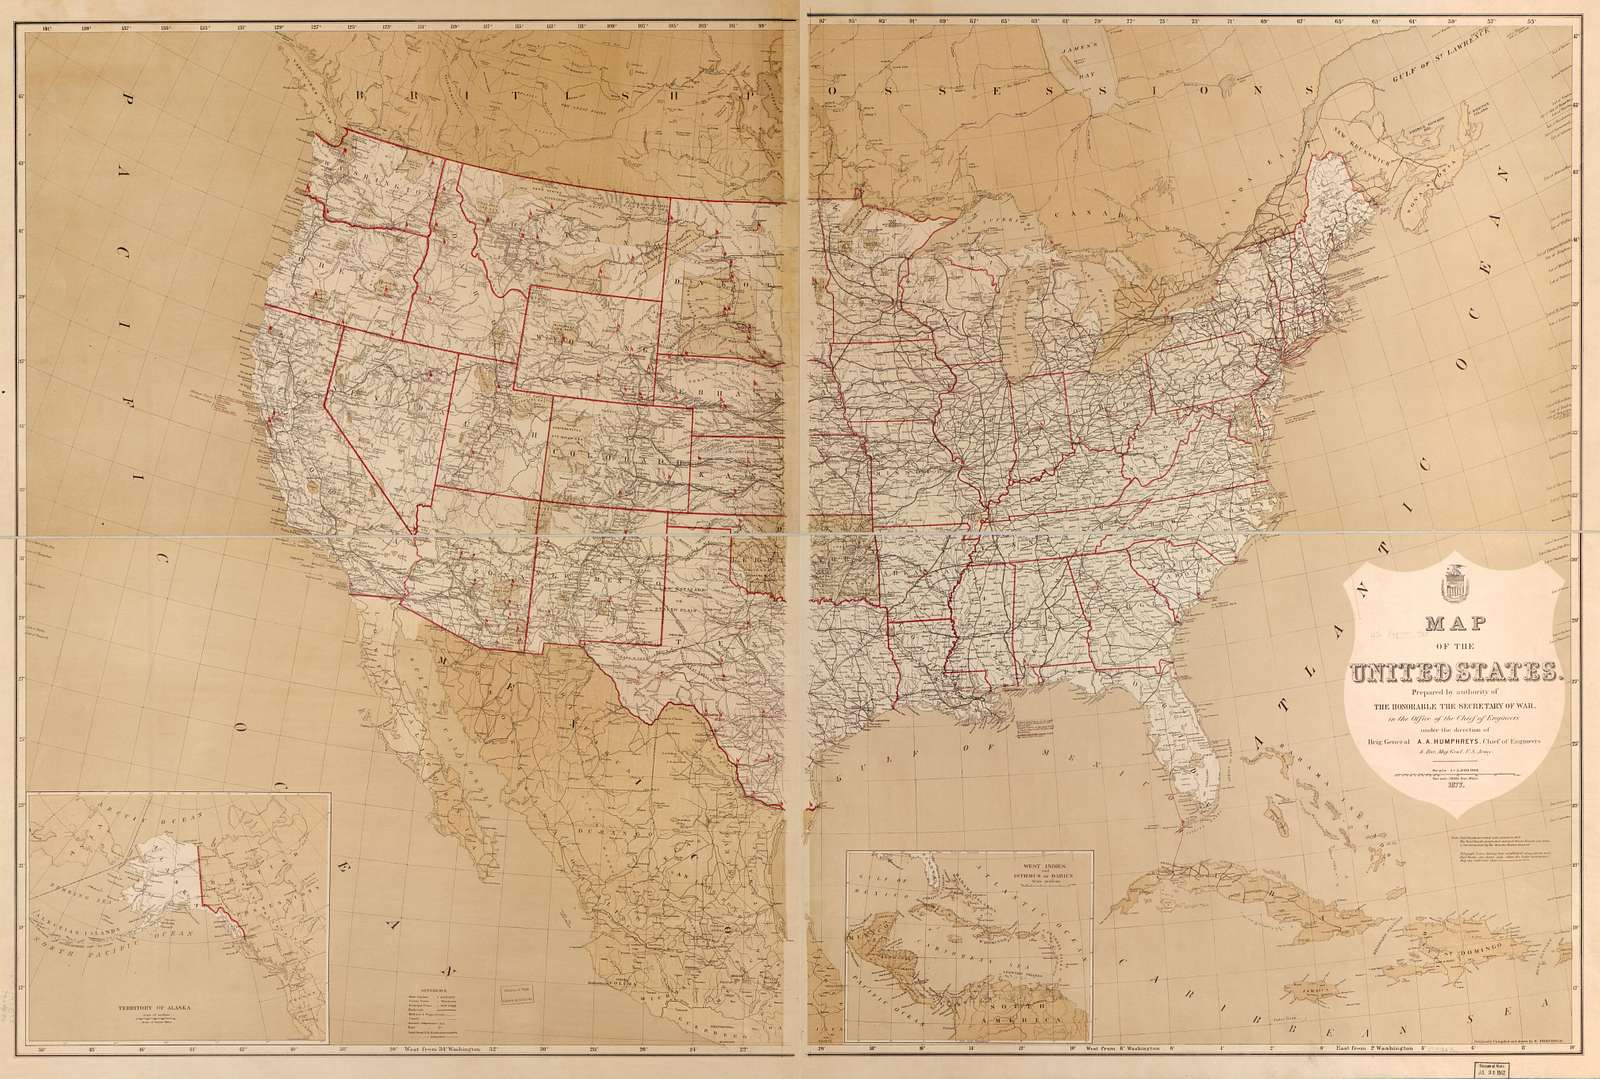 Map of the United States /